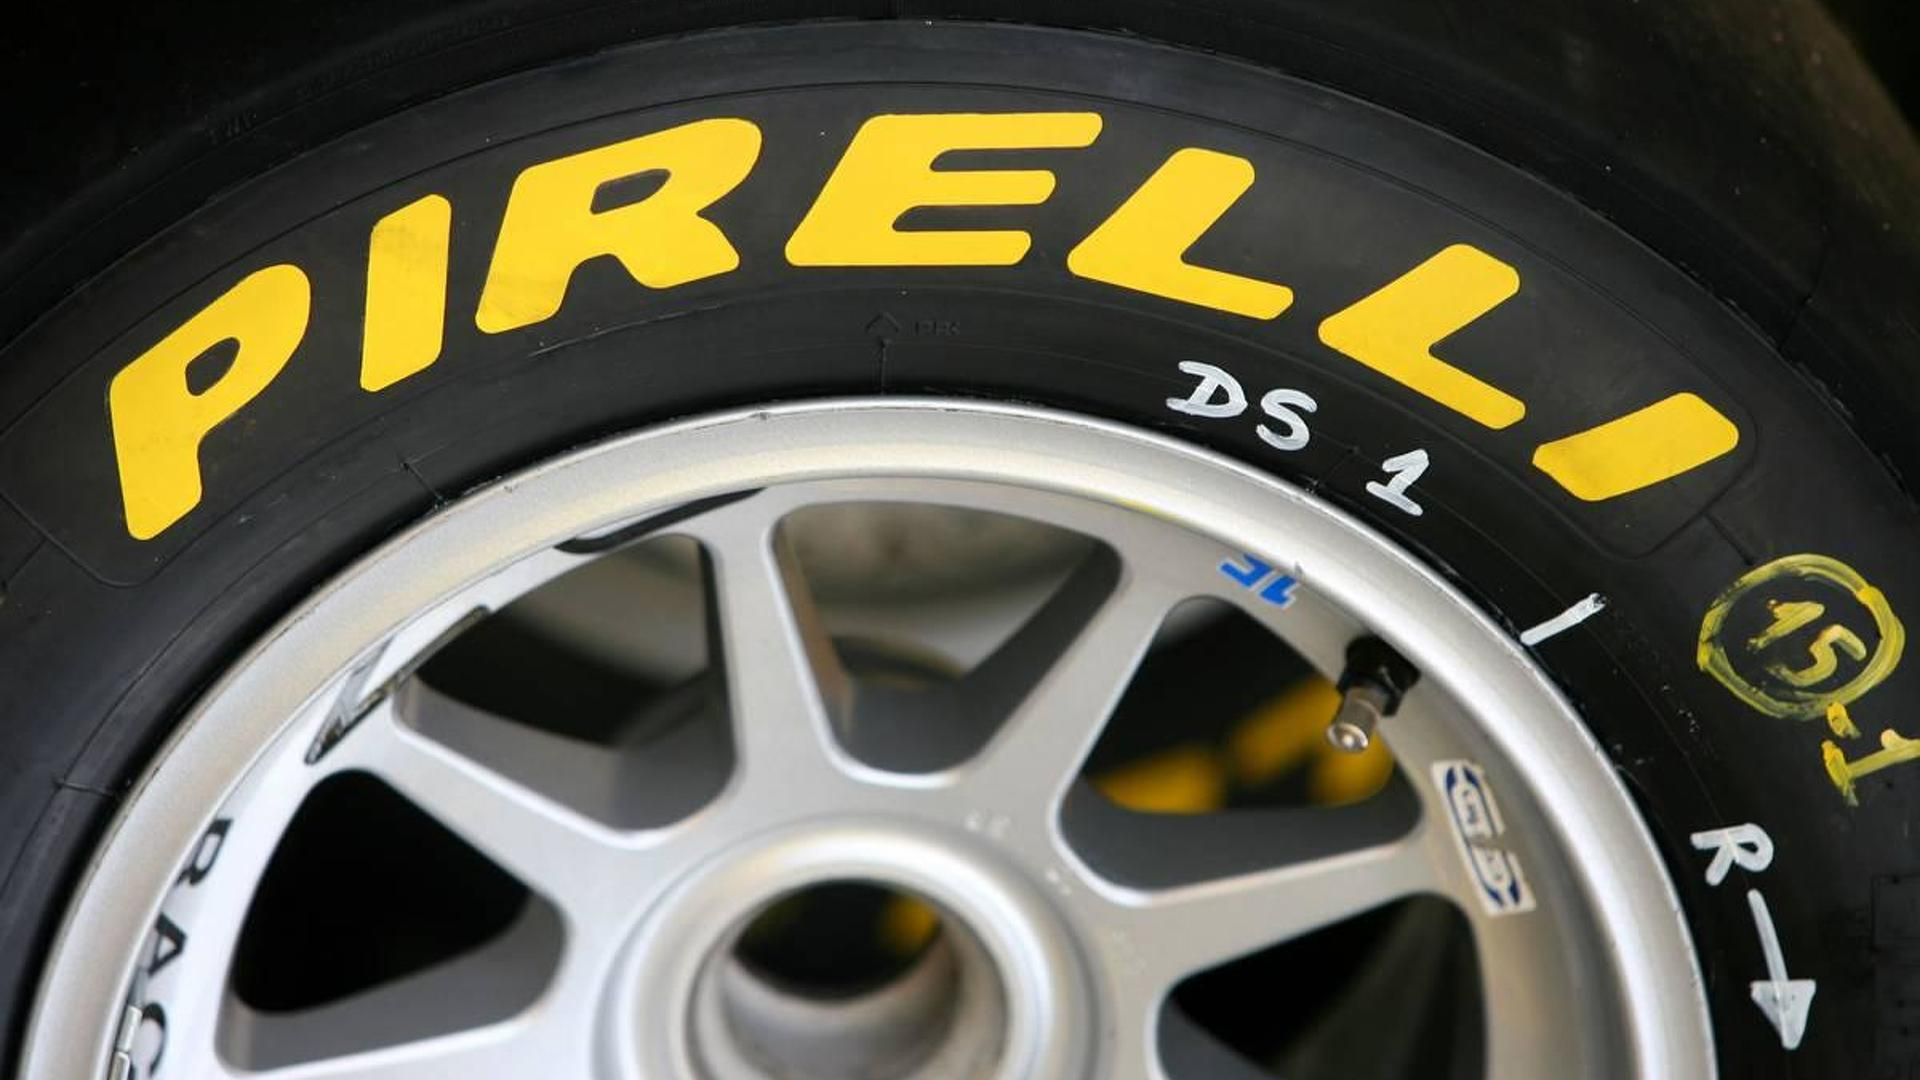 Pirelli tyres to be same for F1 and GP2 in 2011